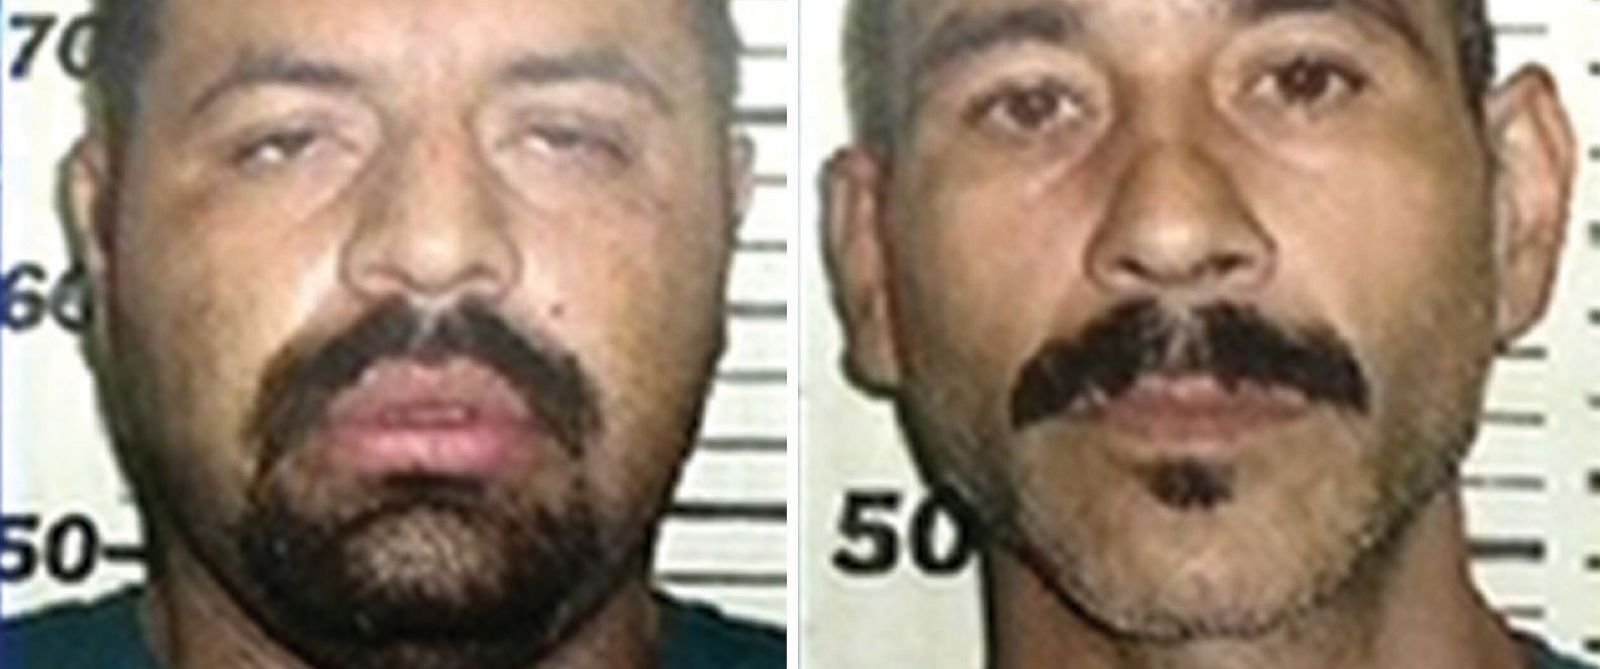 PHOTO: Two Mexican nationals, 30-year old Gustavo Tijerina of La Villa, Texas and 40-year old Ismael Vallejo of Weslaco, Texas, allegedly shot and killed Border Patrol Agent Javier Vega.